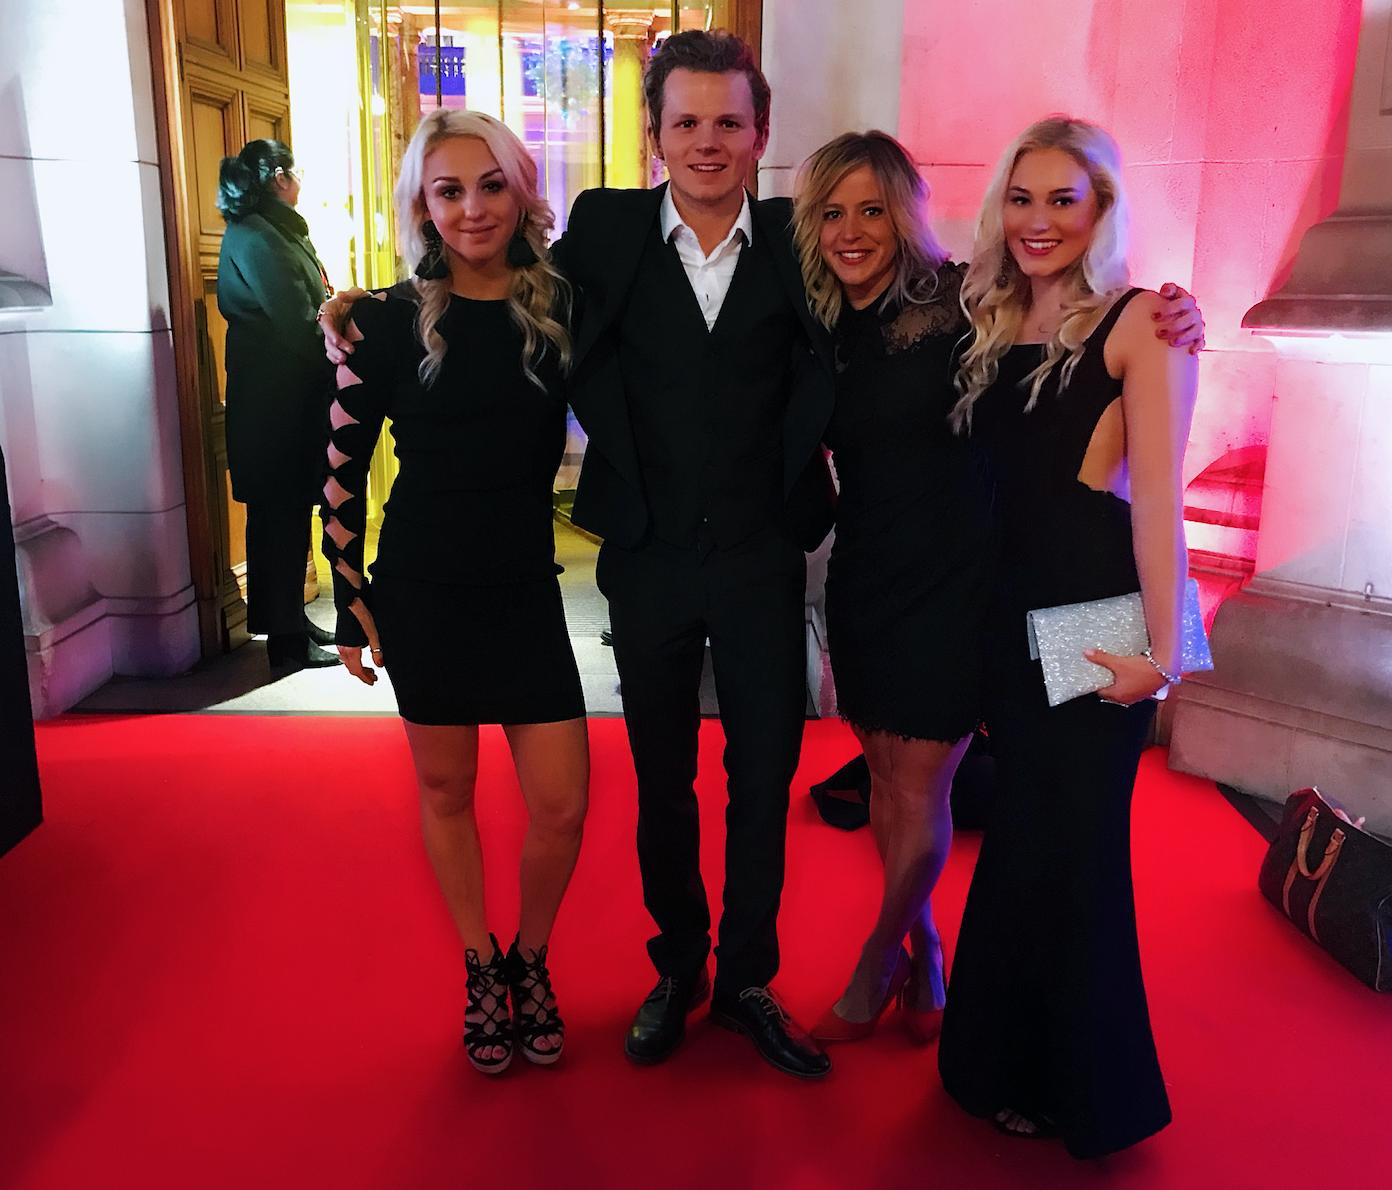 On the red carpet at the Team GB Ball in London w/ The GB Park and Pipe Squad. Jamie Nicholls, Jenny Jones, Katie Ormerod.